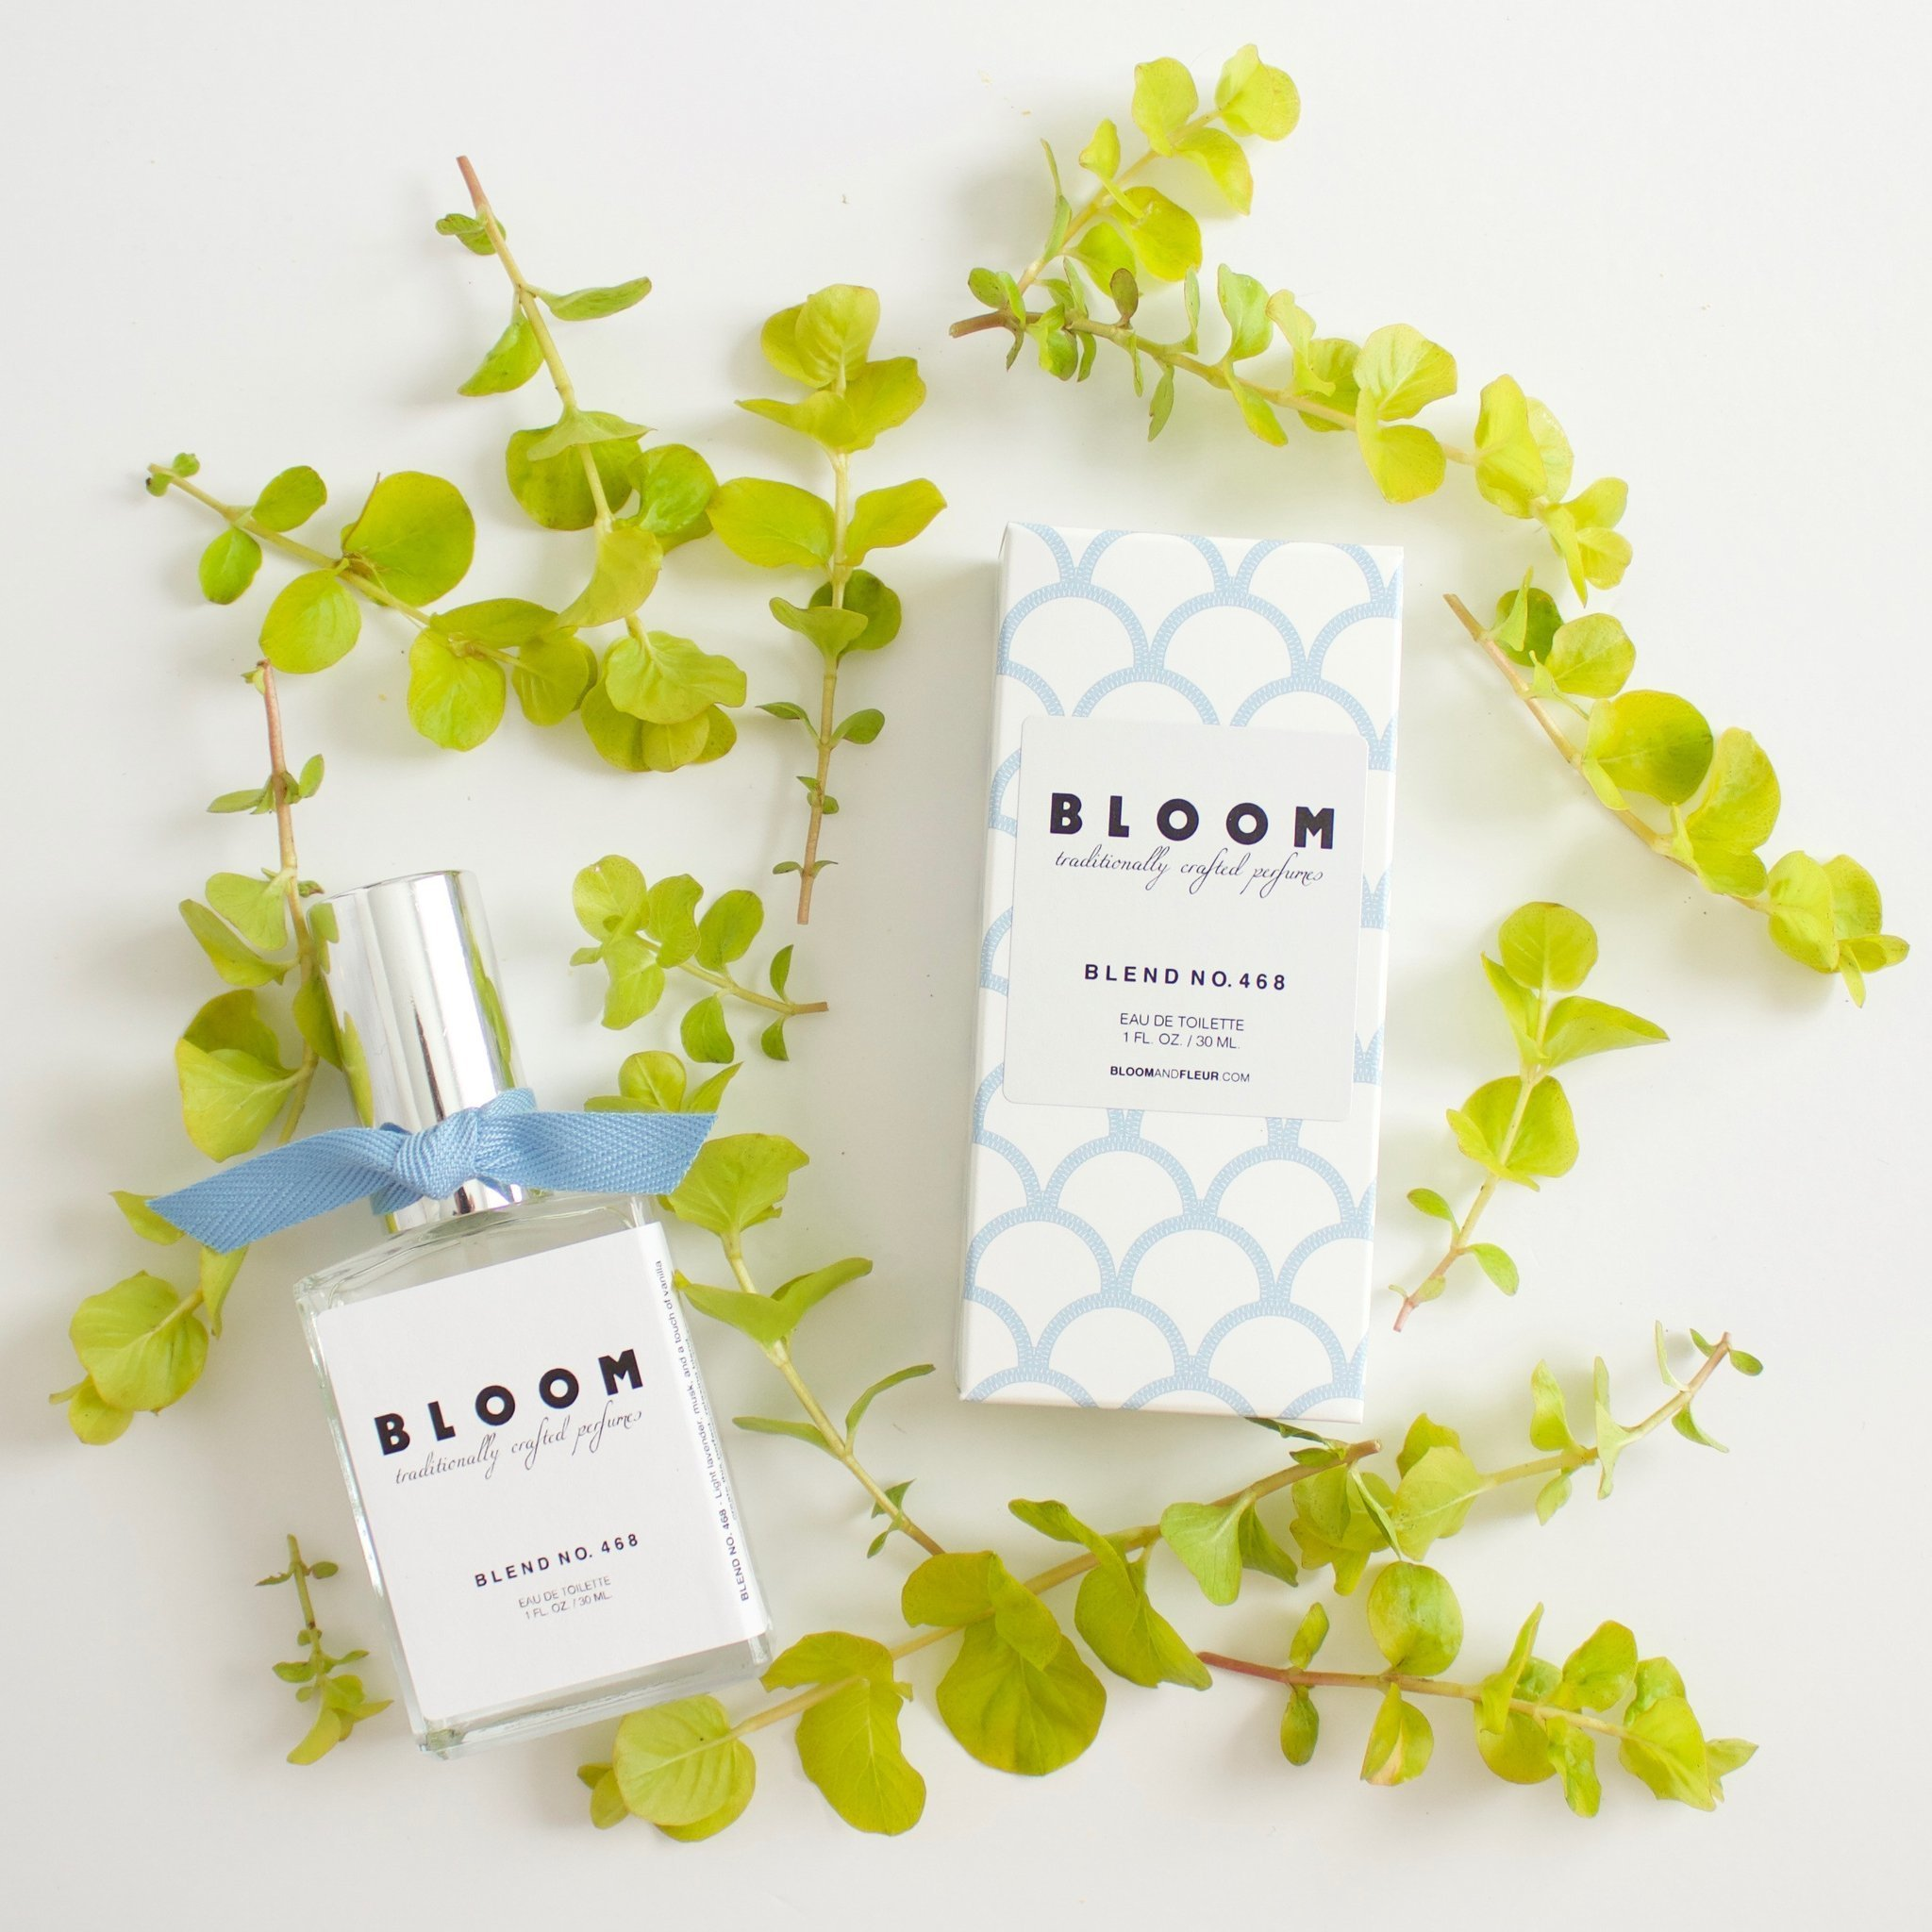 Bloom Perfume - Blend no. 468 UPHG001-BF-B468